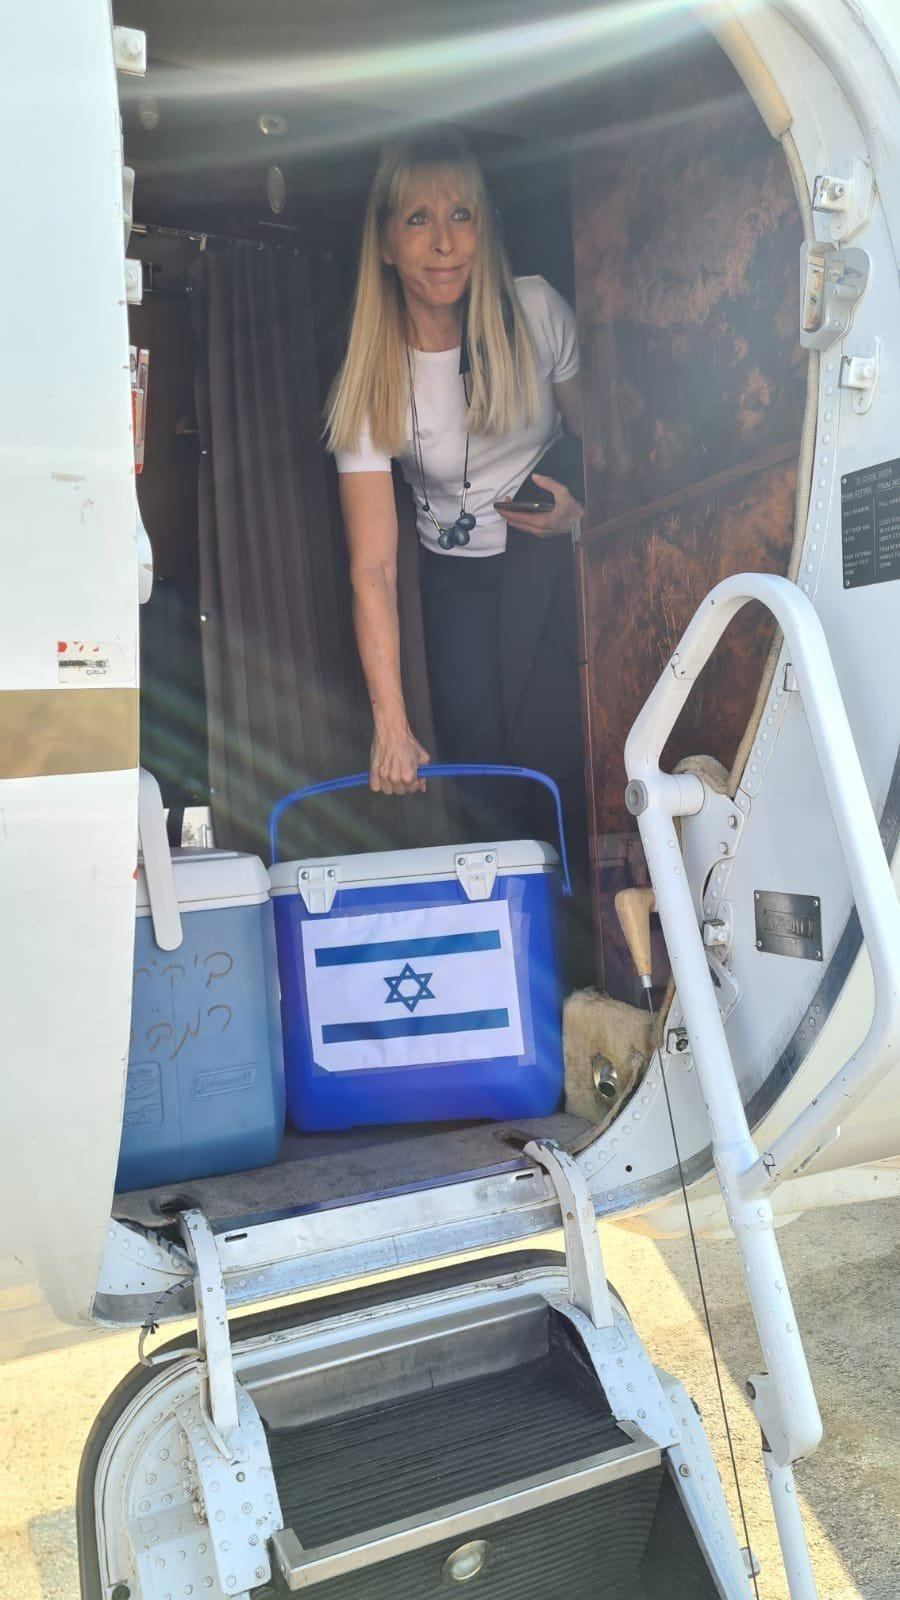 Tamar Ashkenazi, managing director of the Israel National Transplant Center, steps off the private jet used to shuttle a kidney from a living Jewish donor to an ailing Arab mother she did not know. The exchange between nations with typically chilly relations was historic, seeing three sets of donors helping three unknown recipients, regardless of nationality or religion.